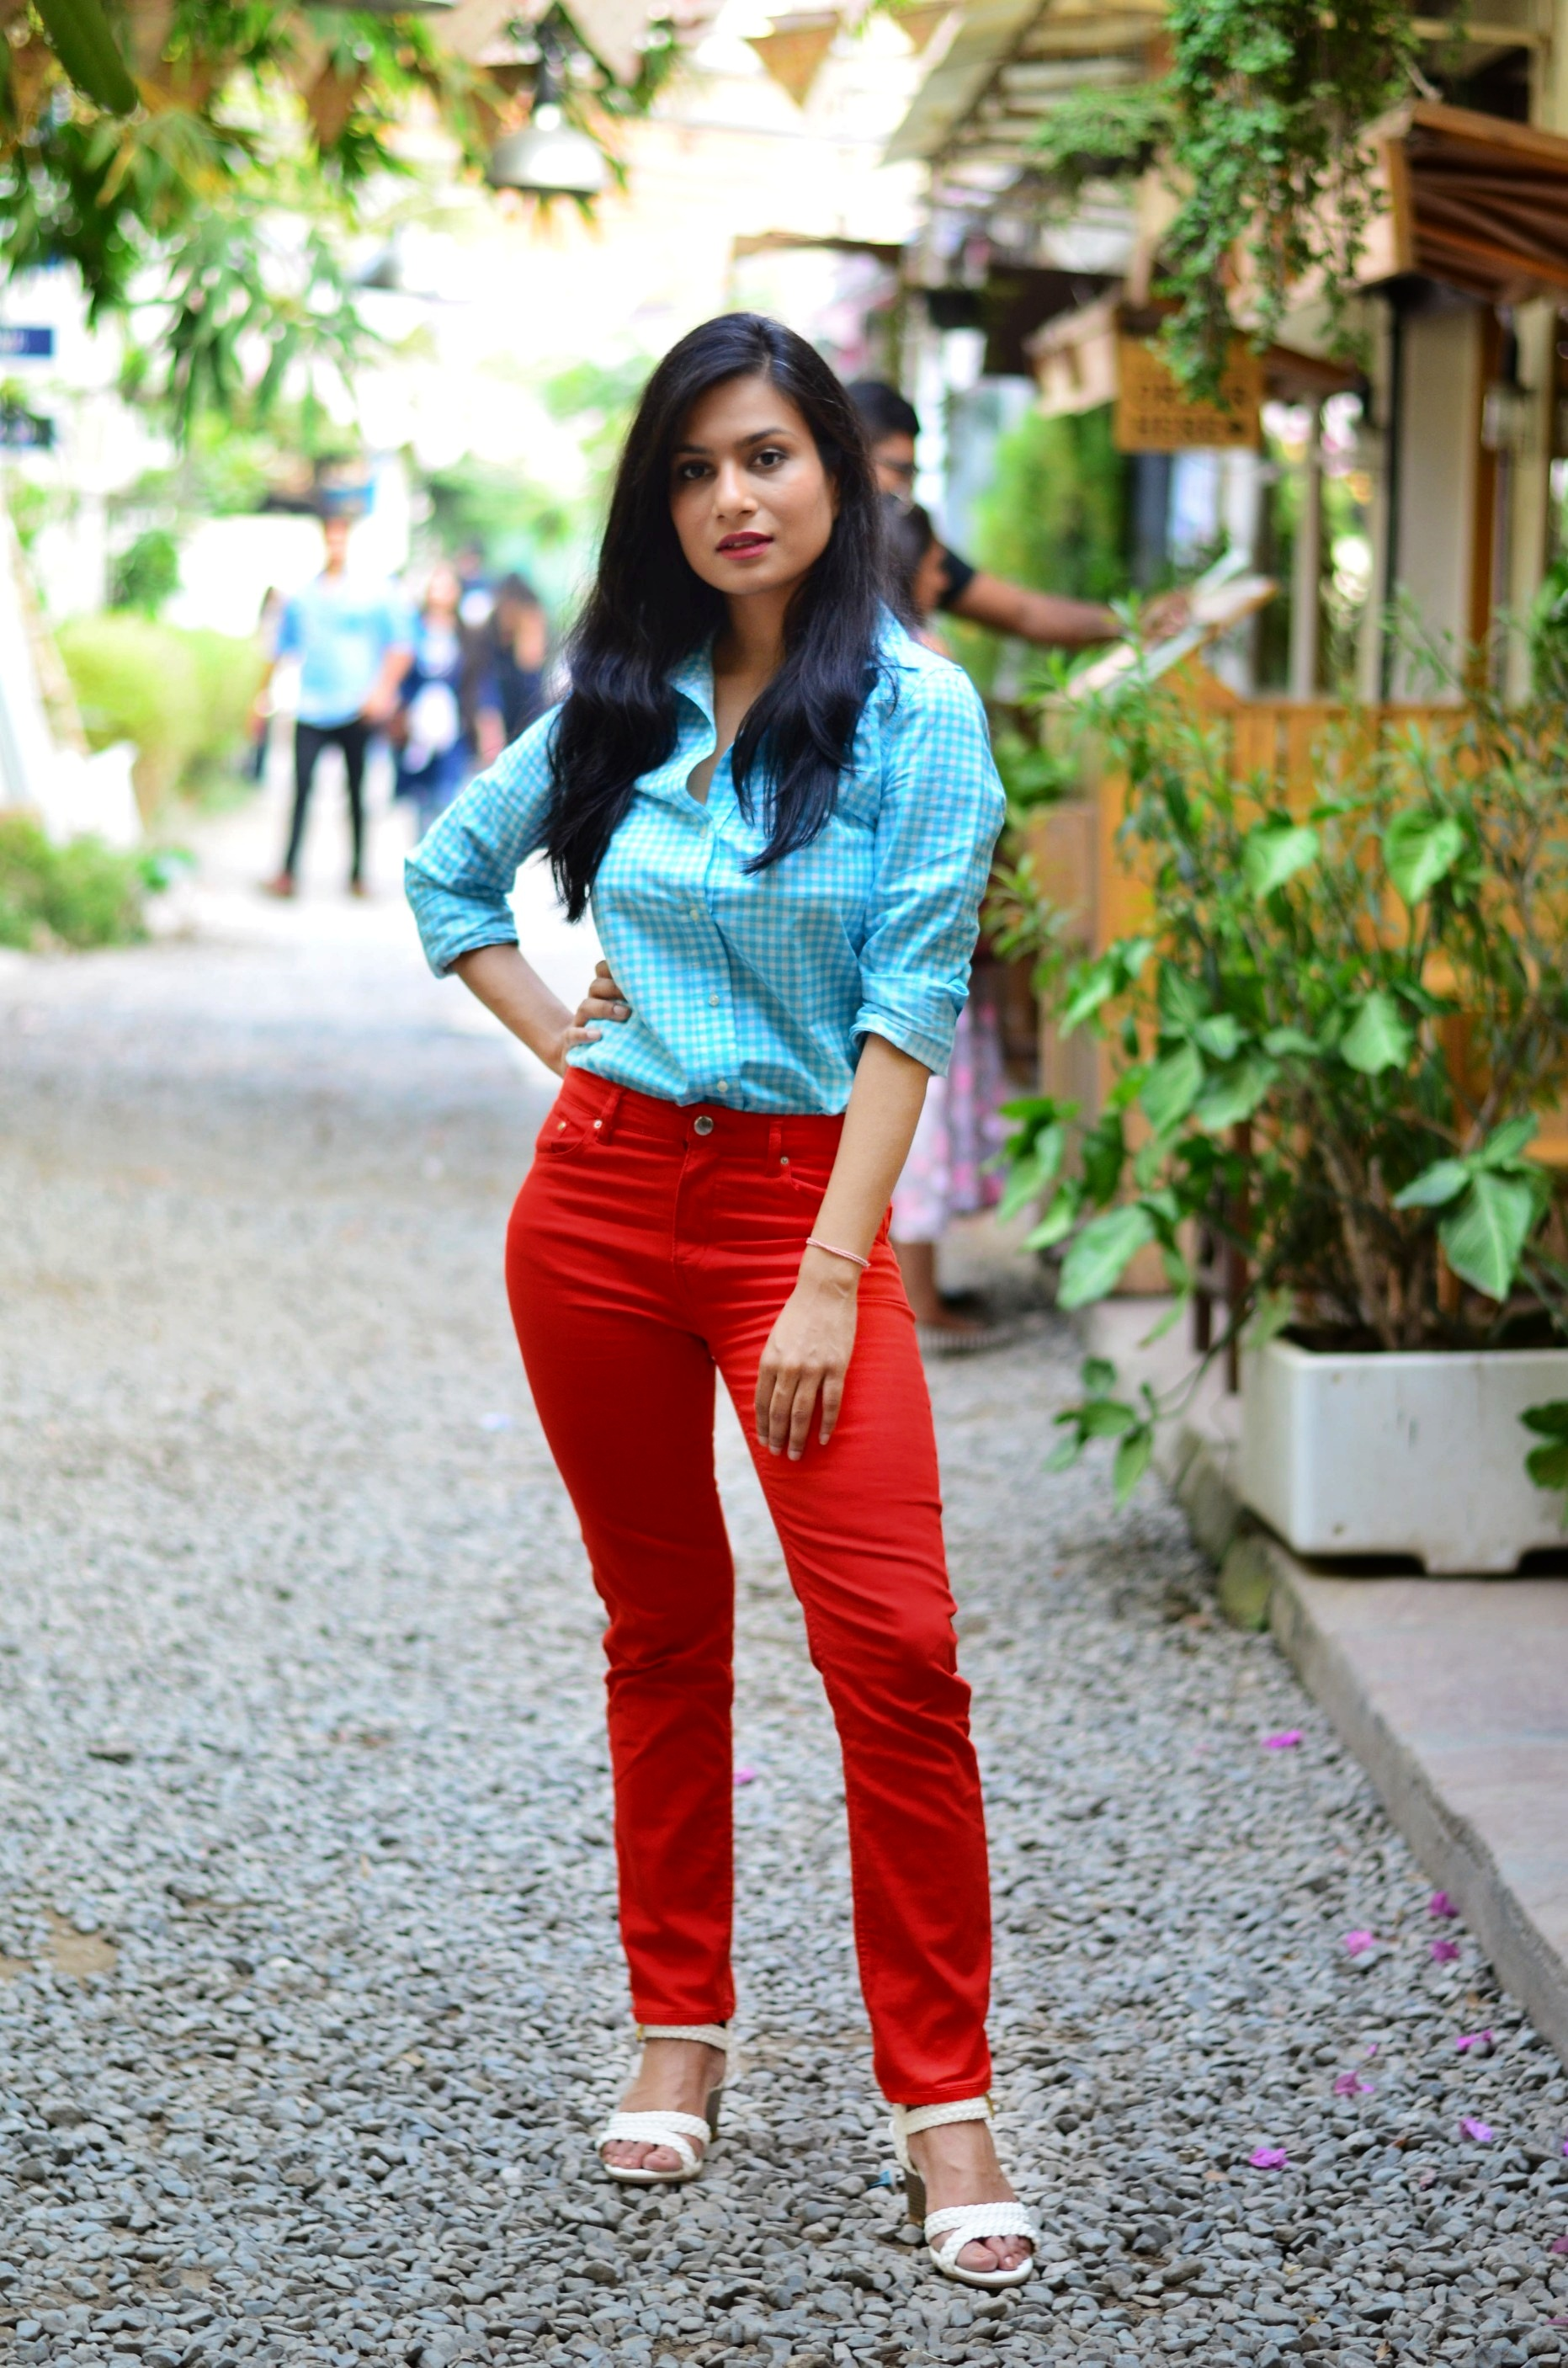 weekend-look-neon-orange-pants-light-blue-jeans-white-wedges